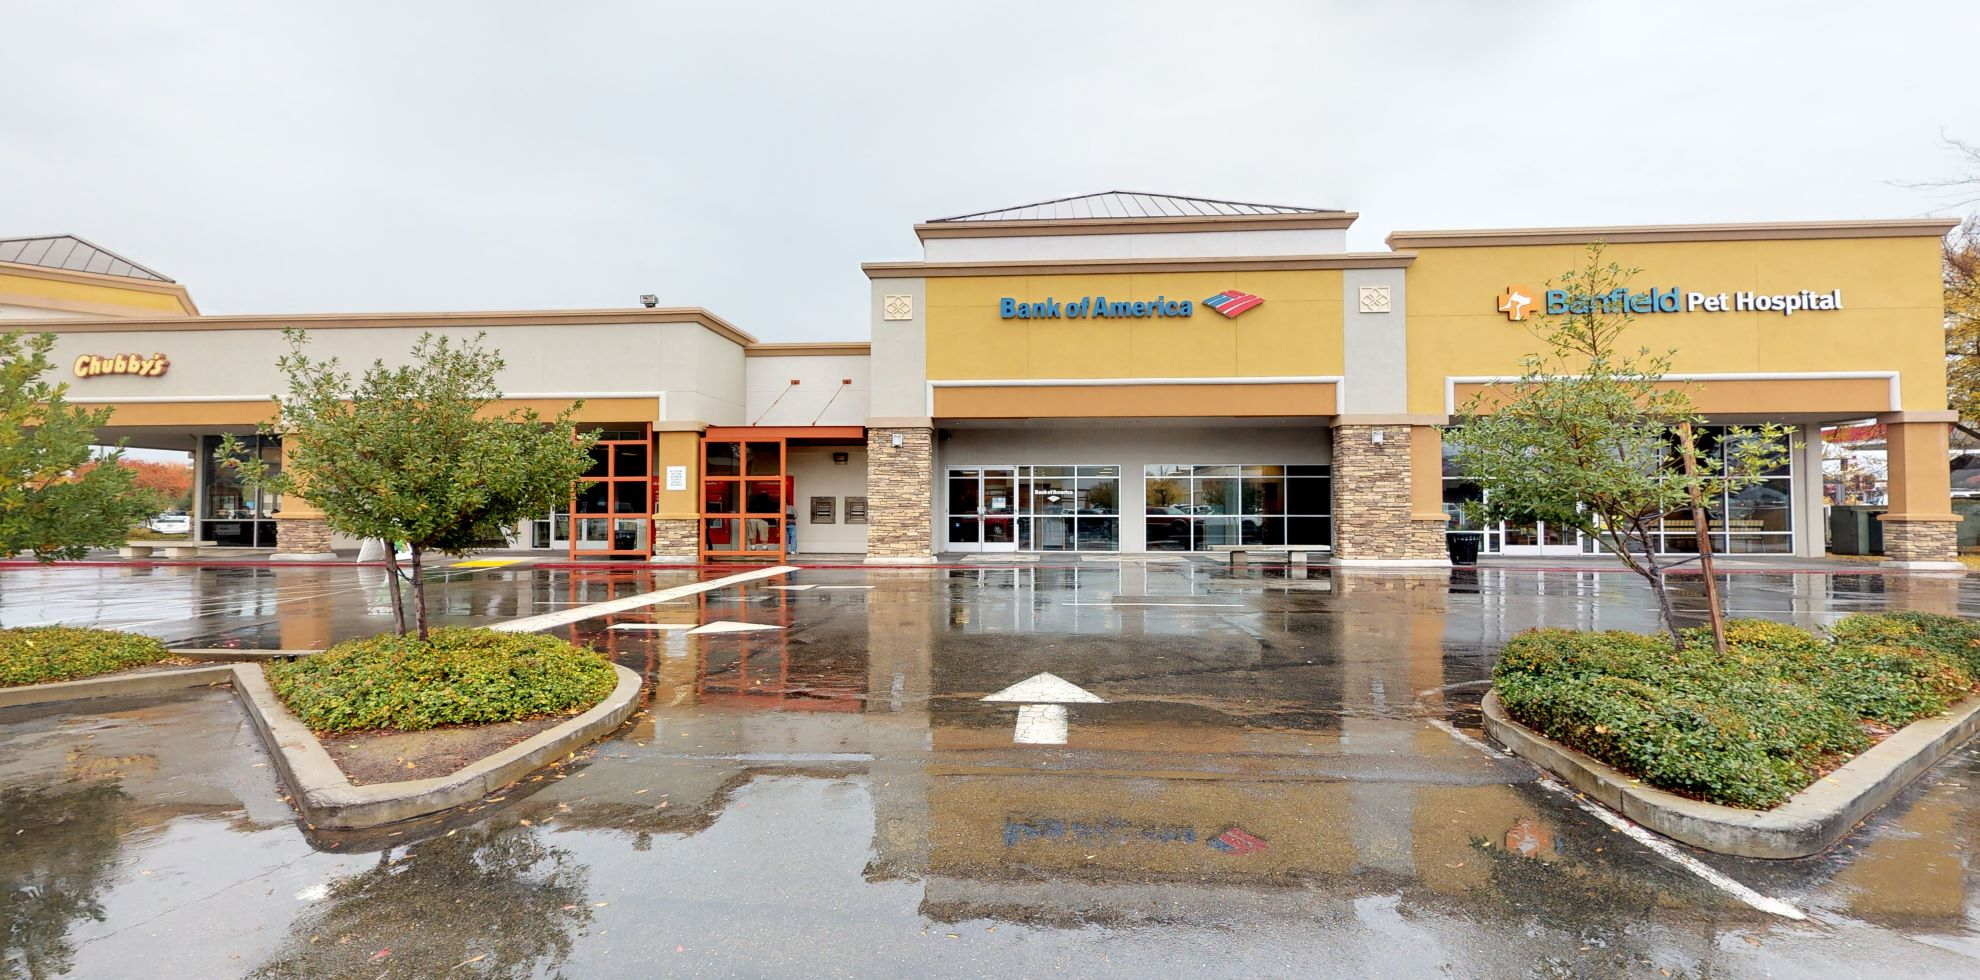 Bank of America financial center with walk-up ATM | 431 Roseville Sq, Roseville, CA 95678